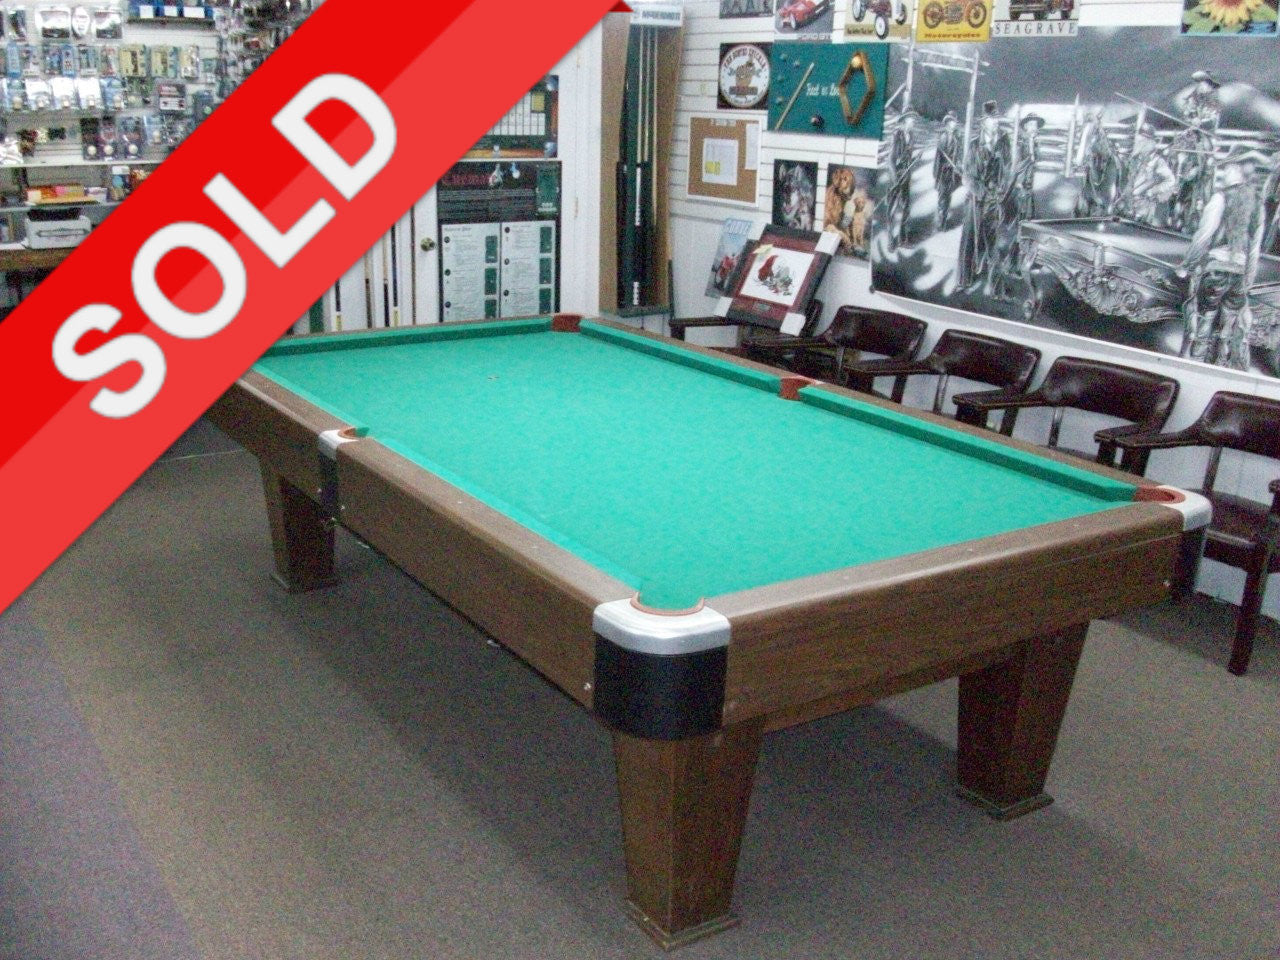 foot ventura county los used commercial table orange index angeles crown pool inland tables